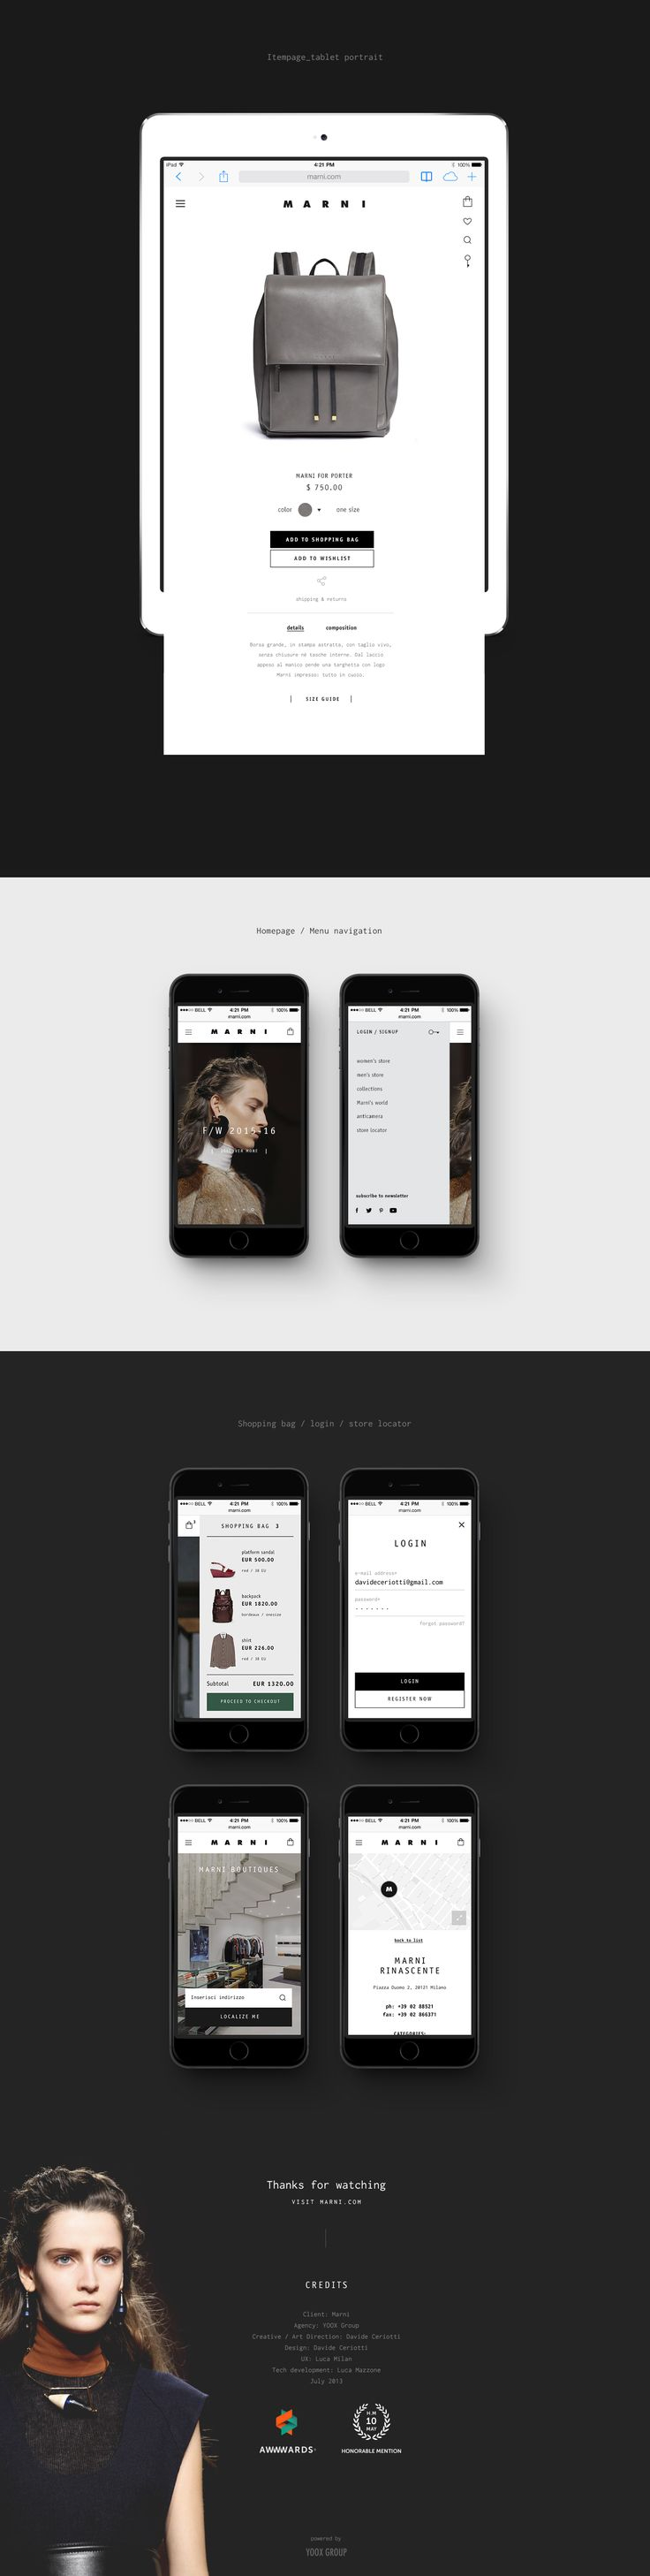 Marni.com on Behance